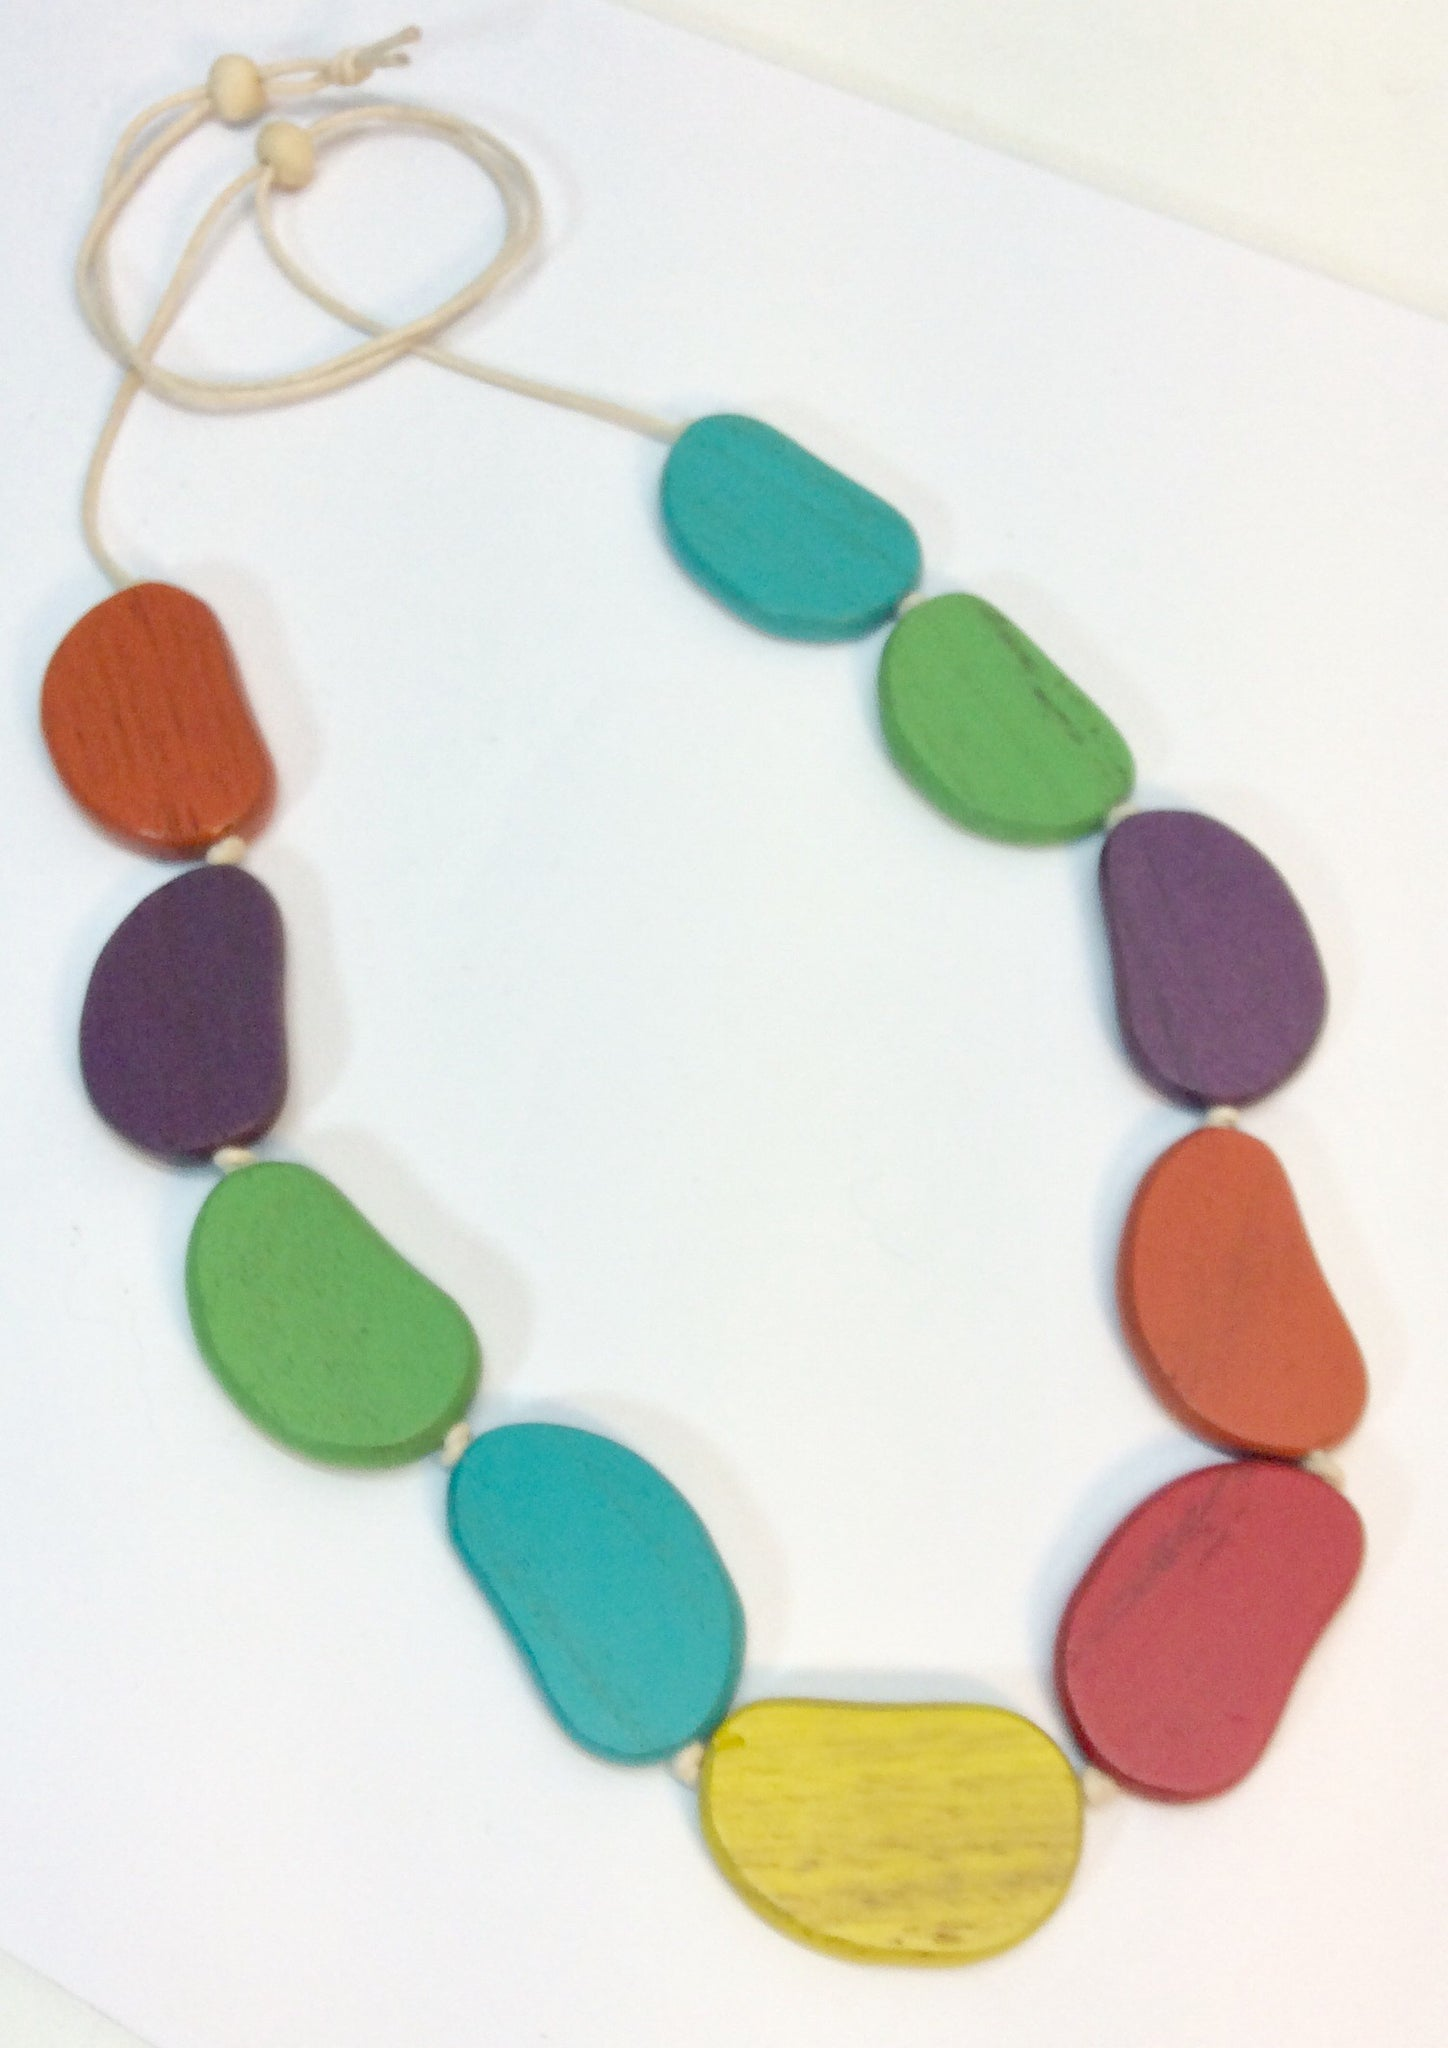 Vibrant coloured wooden bead necklace